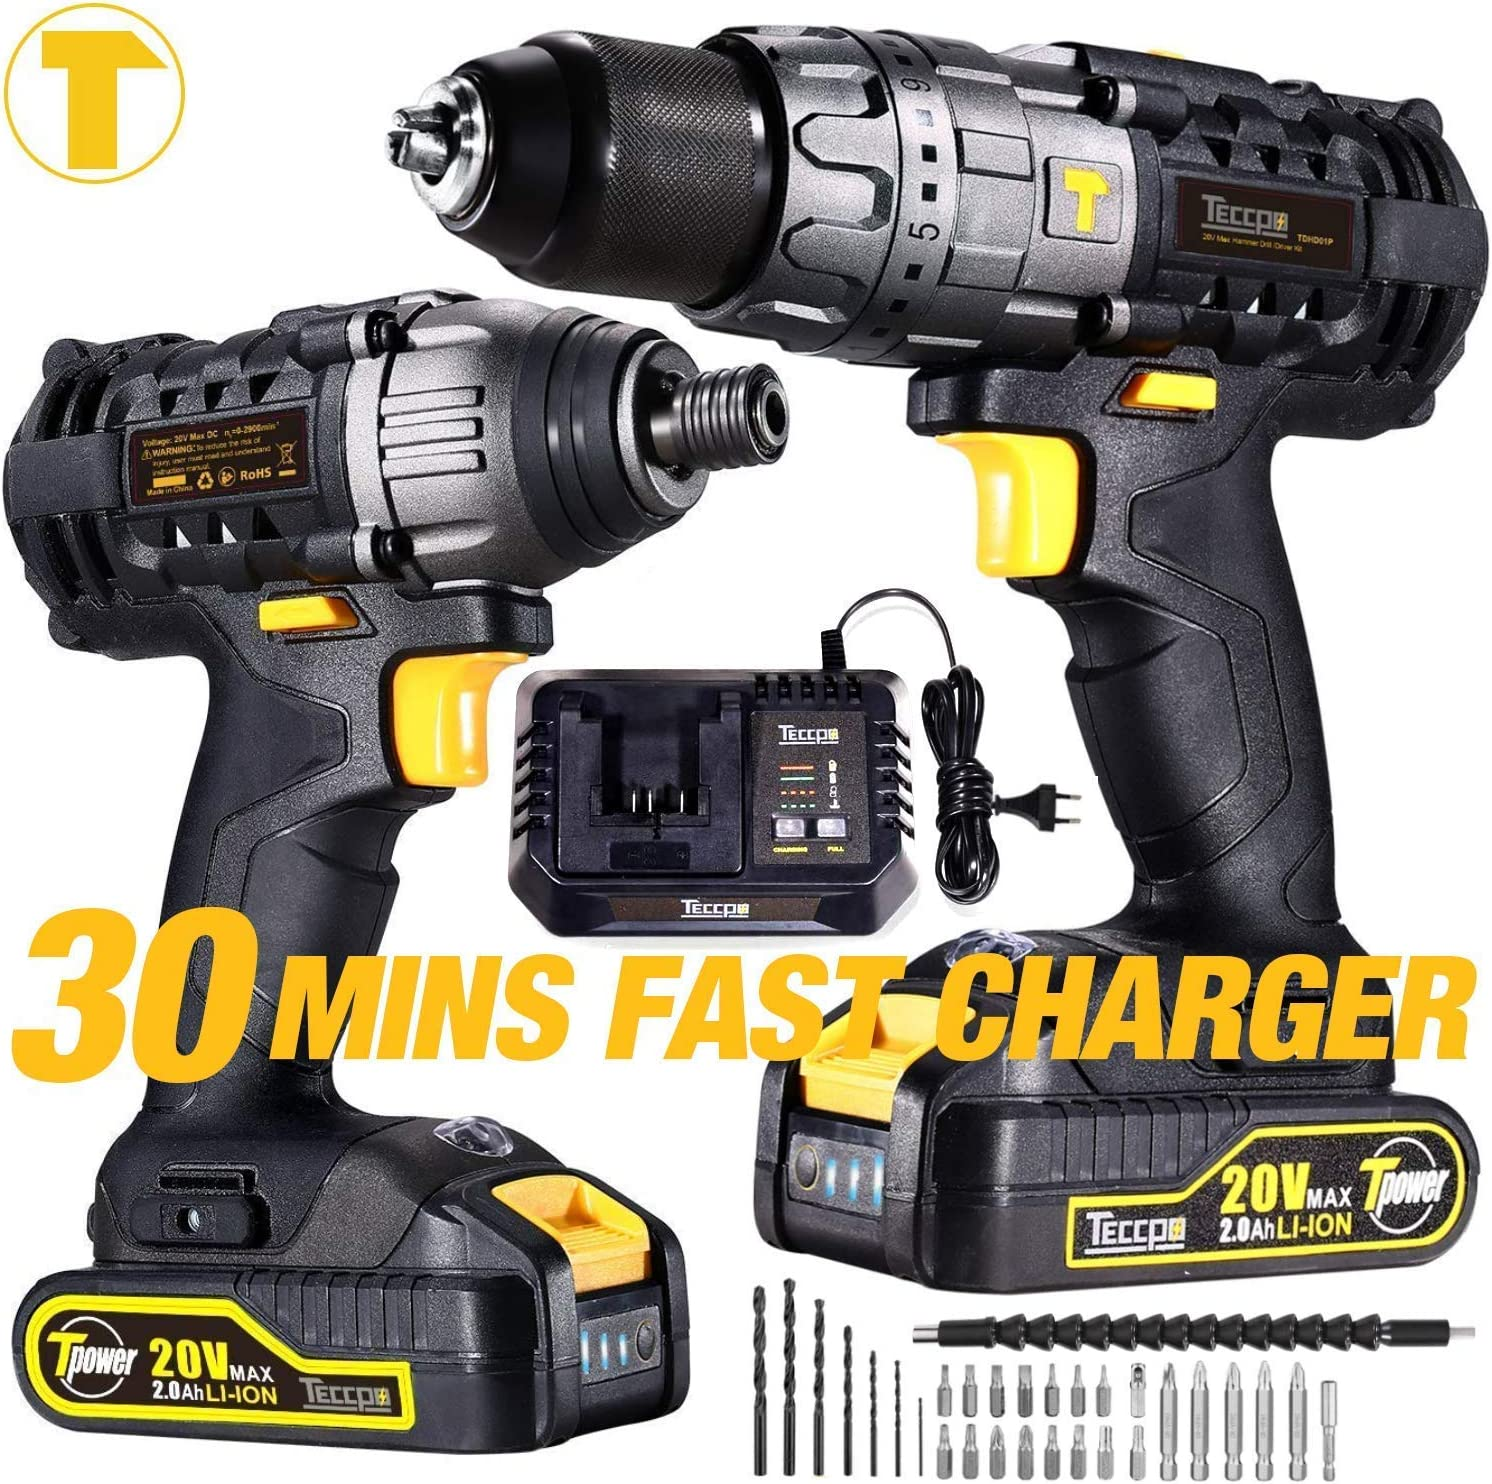 Impact Driver and Hammer Drill, 20V Cordless Combo Kit, 2X2.0Ah Li-Ion Batteries, 30-Min Quick Charger, 32pcs Accessories, Variable Speed, Tool Bag Included TECCPO